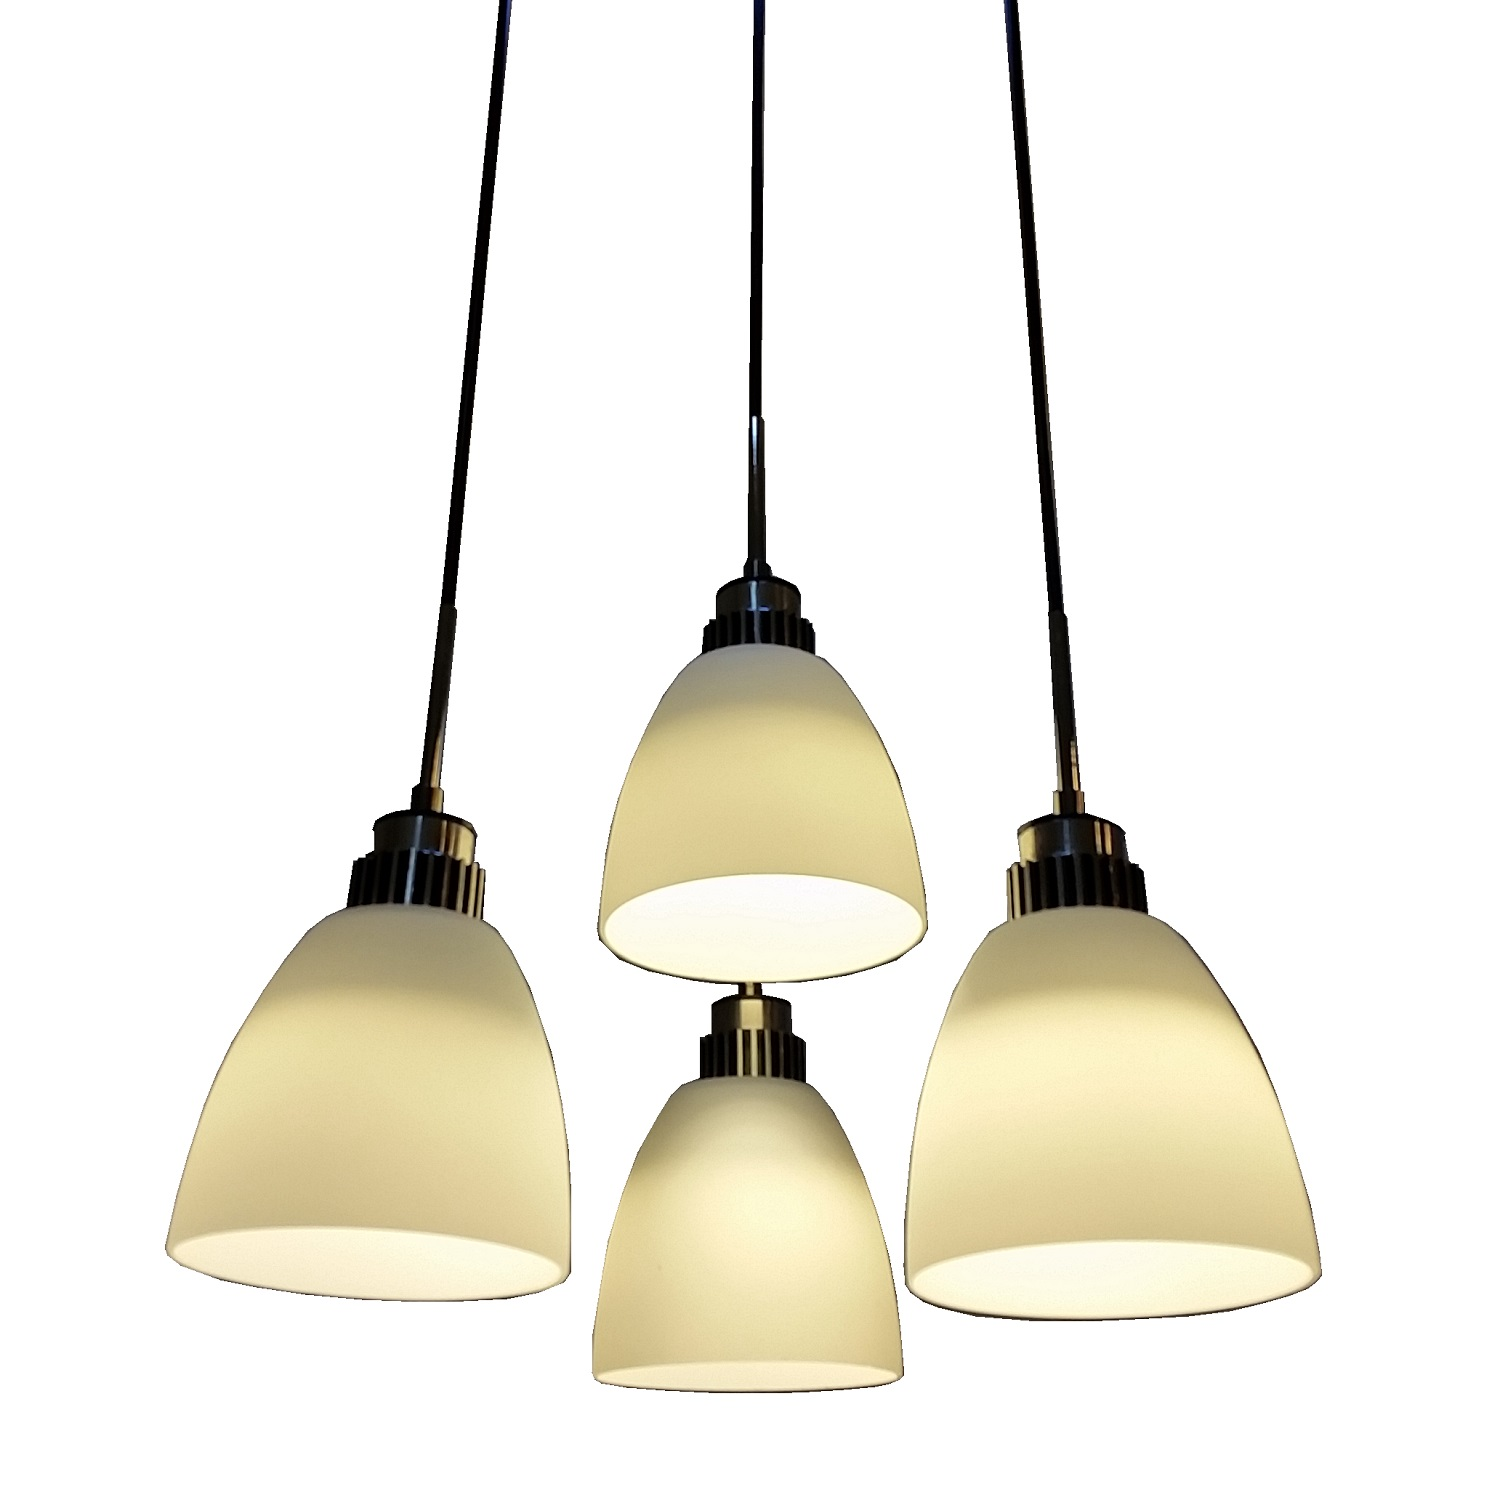 Hanging Lamp Light: 4 Light LED Hanging Pendant Lamp In White Shade L